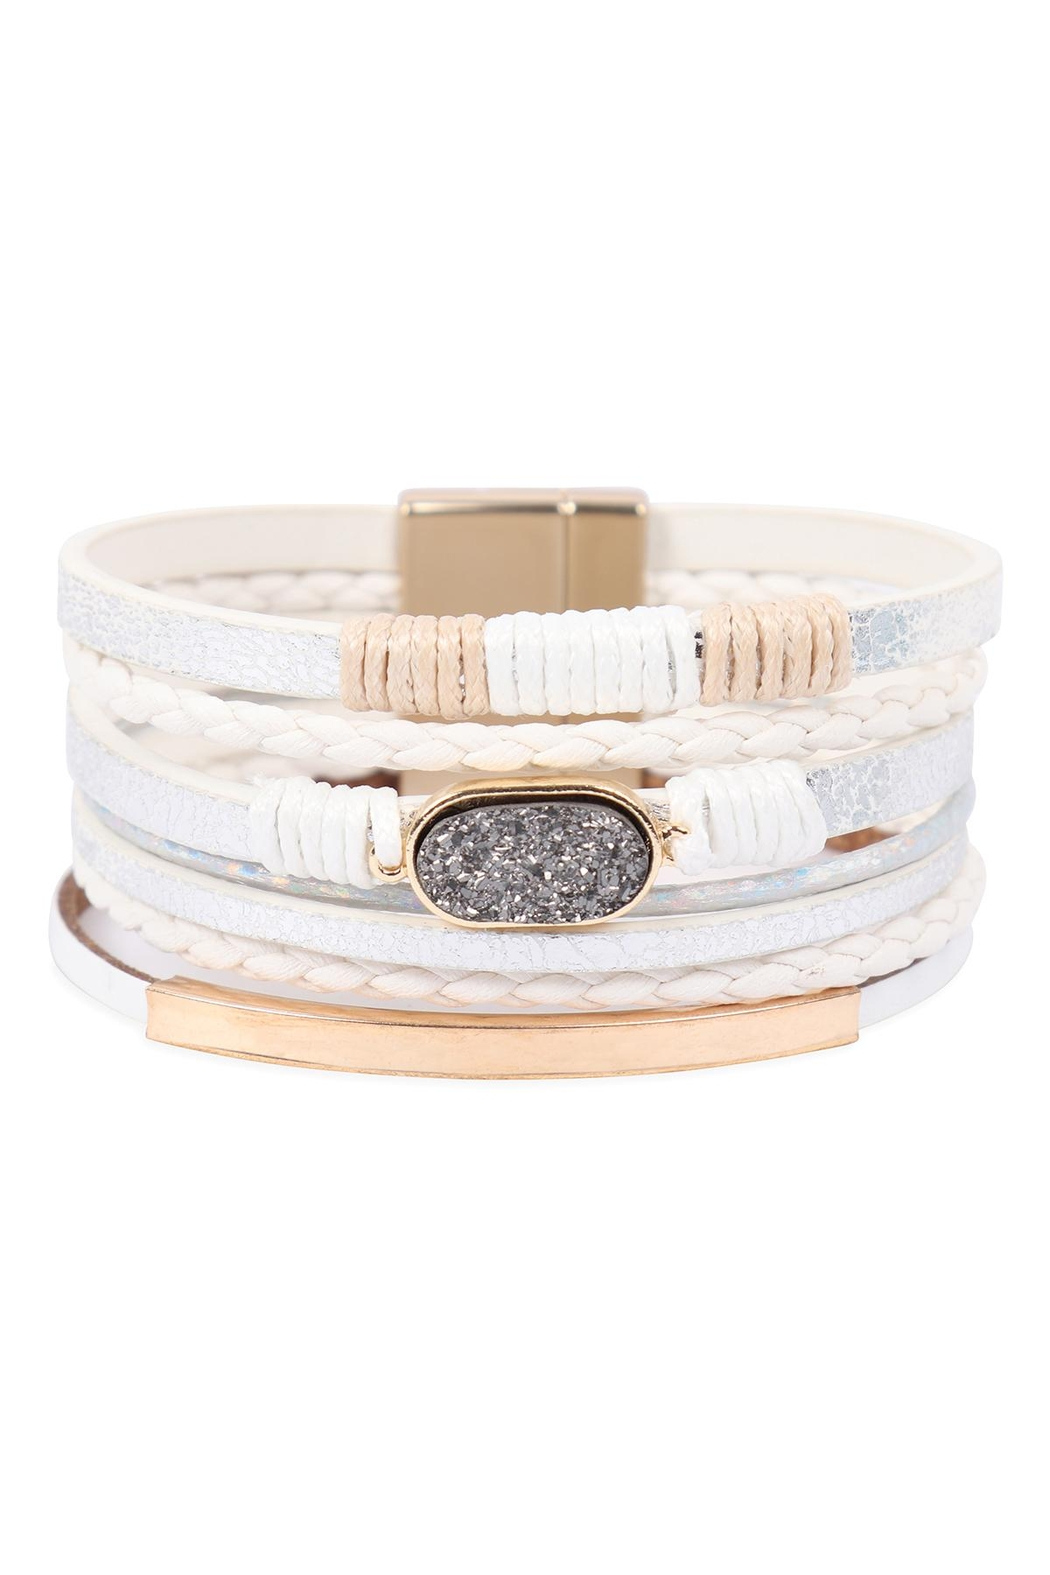 Riah Fashion Multilayer Leather With Druzy Stone Magnetic Lock Bracelet - Main Image